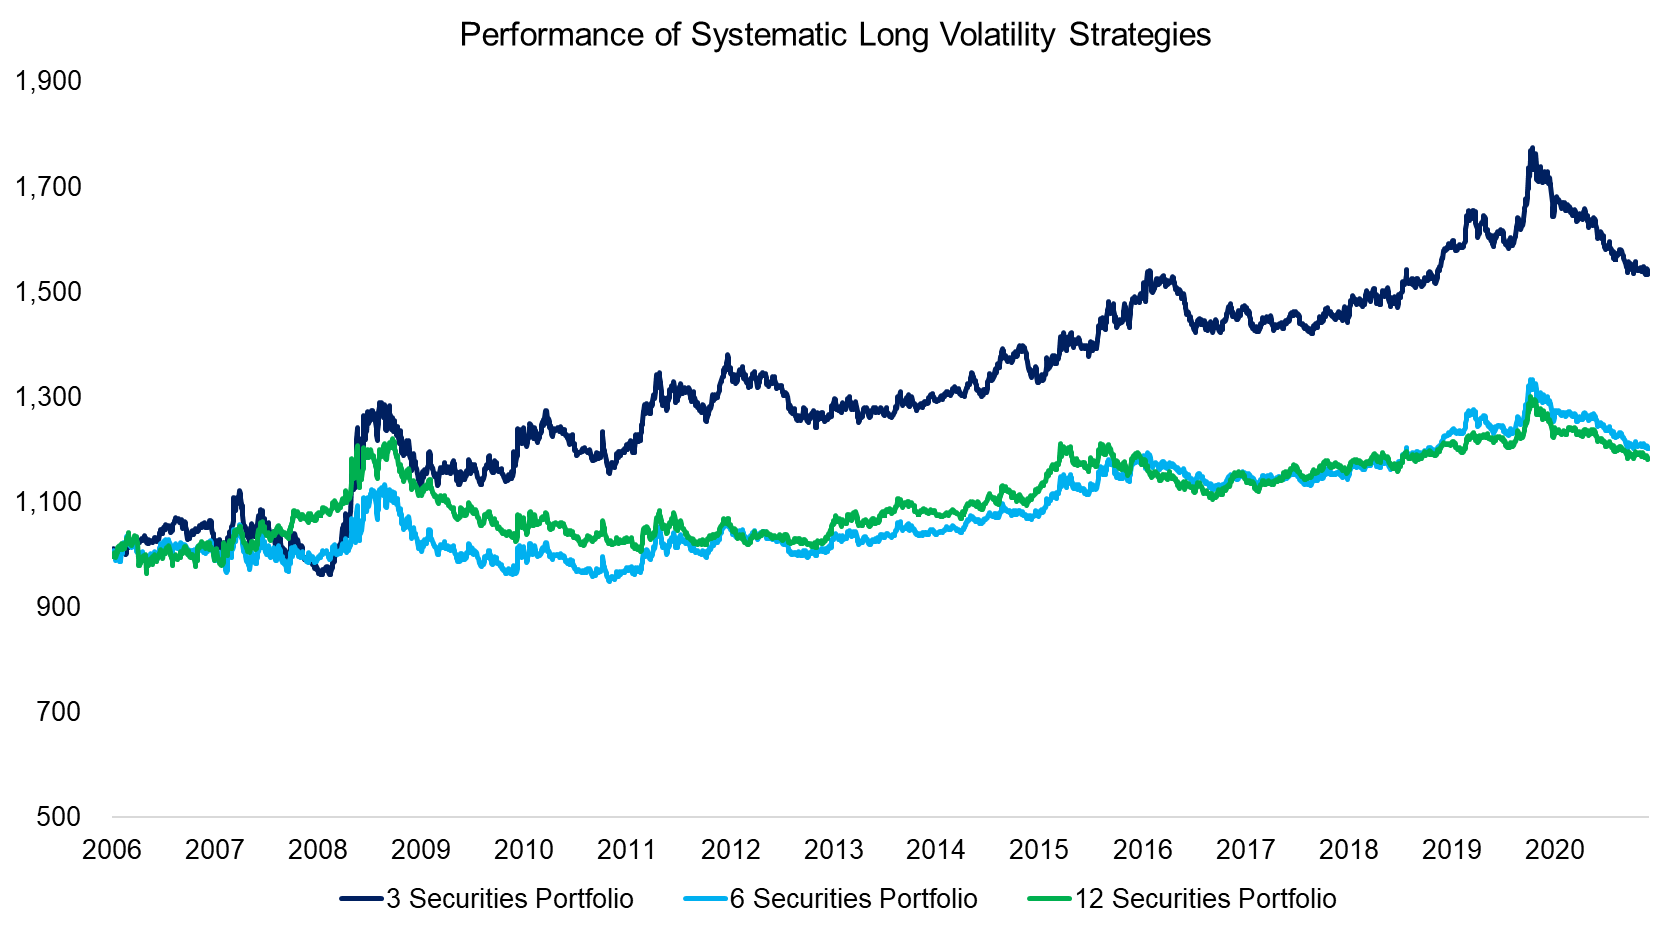 Performance of Systematic Long Volatility Strategies